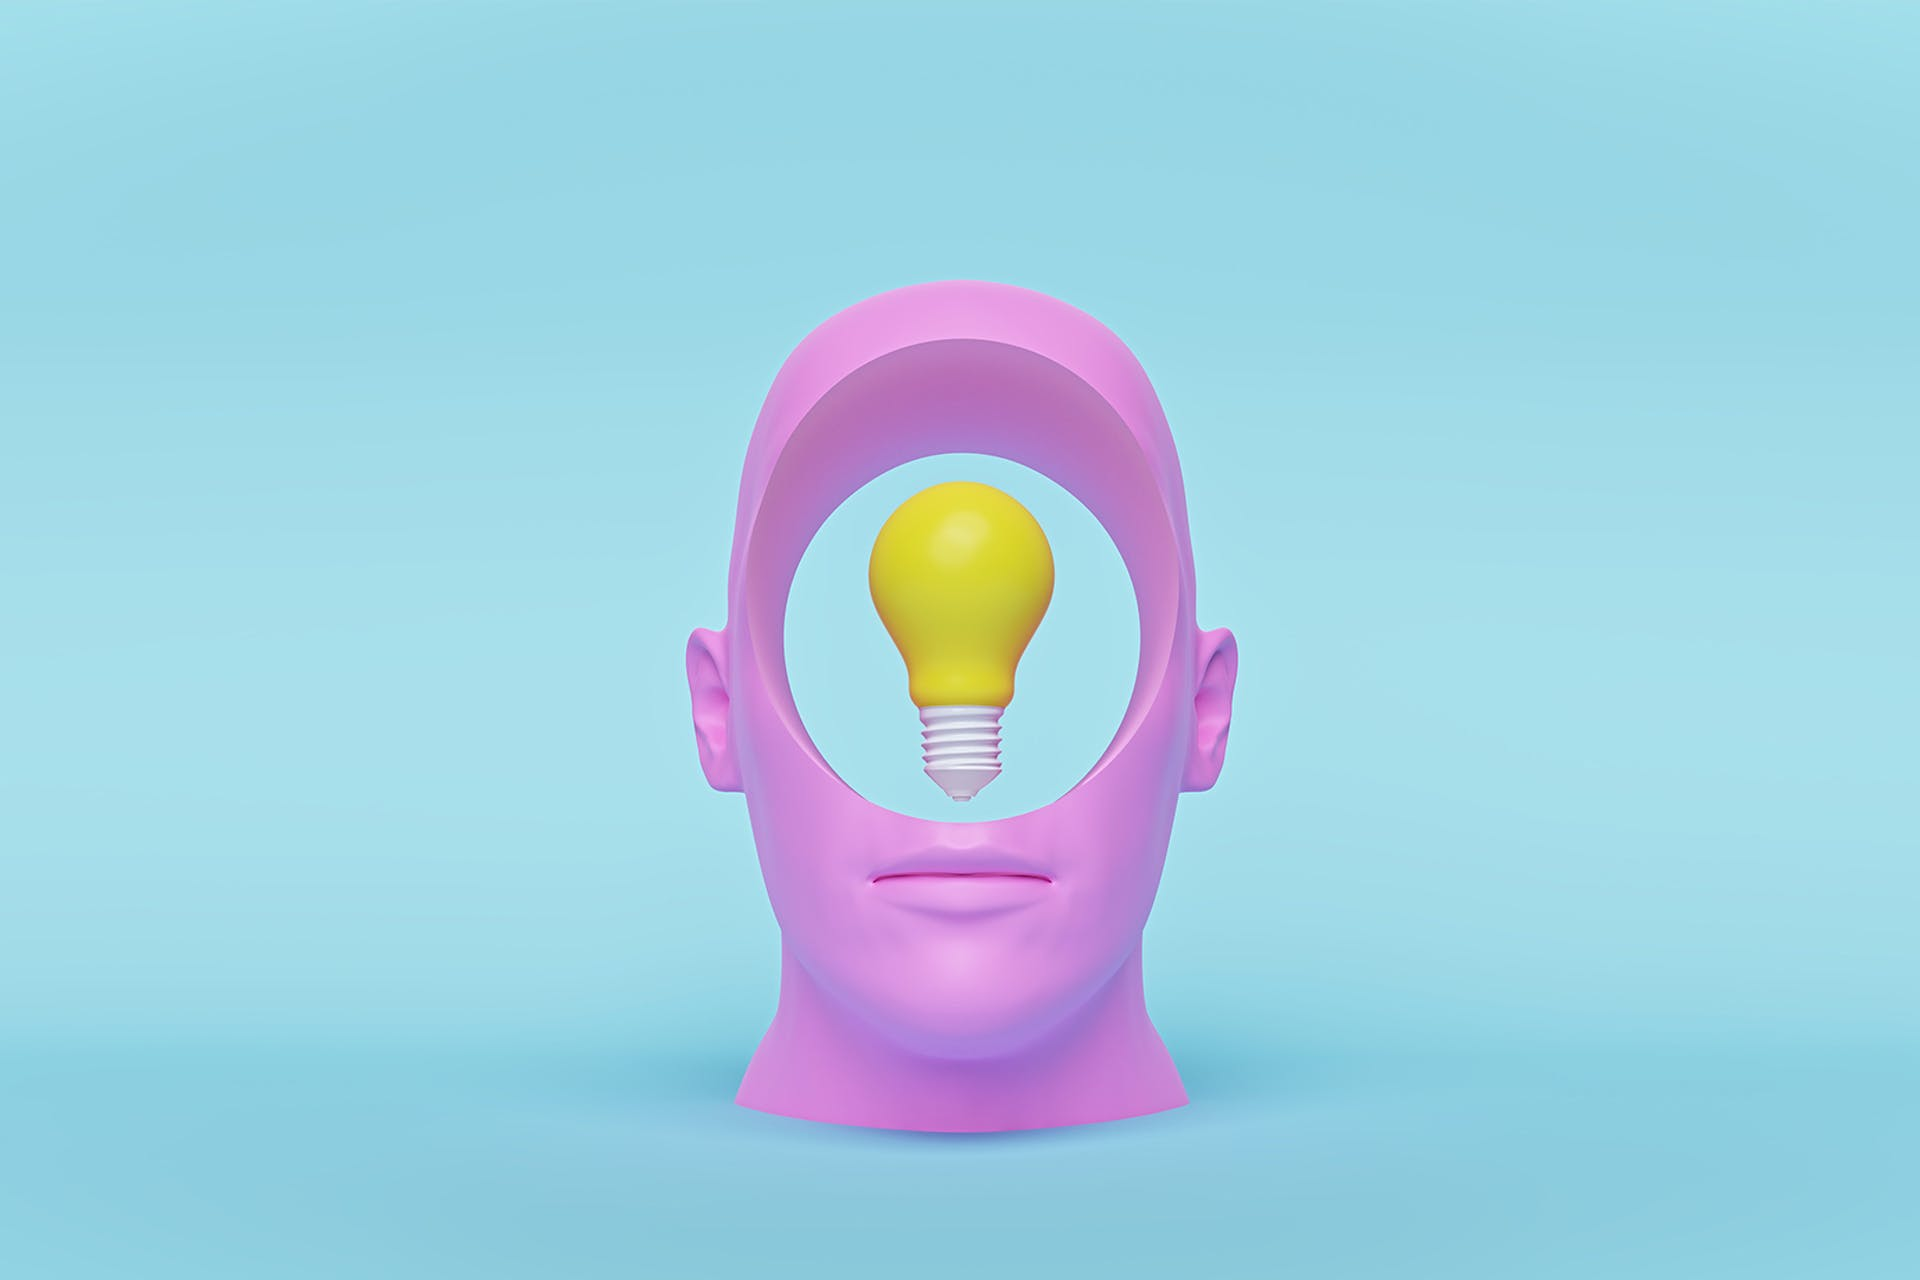 A mold of a human head but the face itself is missing. Instead, there is a hole with a lightbulb in the center. The image is like looking inside of a person to see what ideas they are thinking up, which is what this blog about the most innovative social media posts of 2021 is all about.